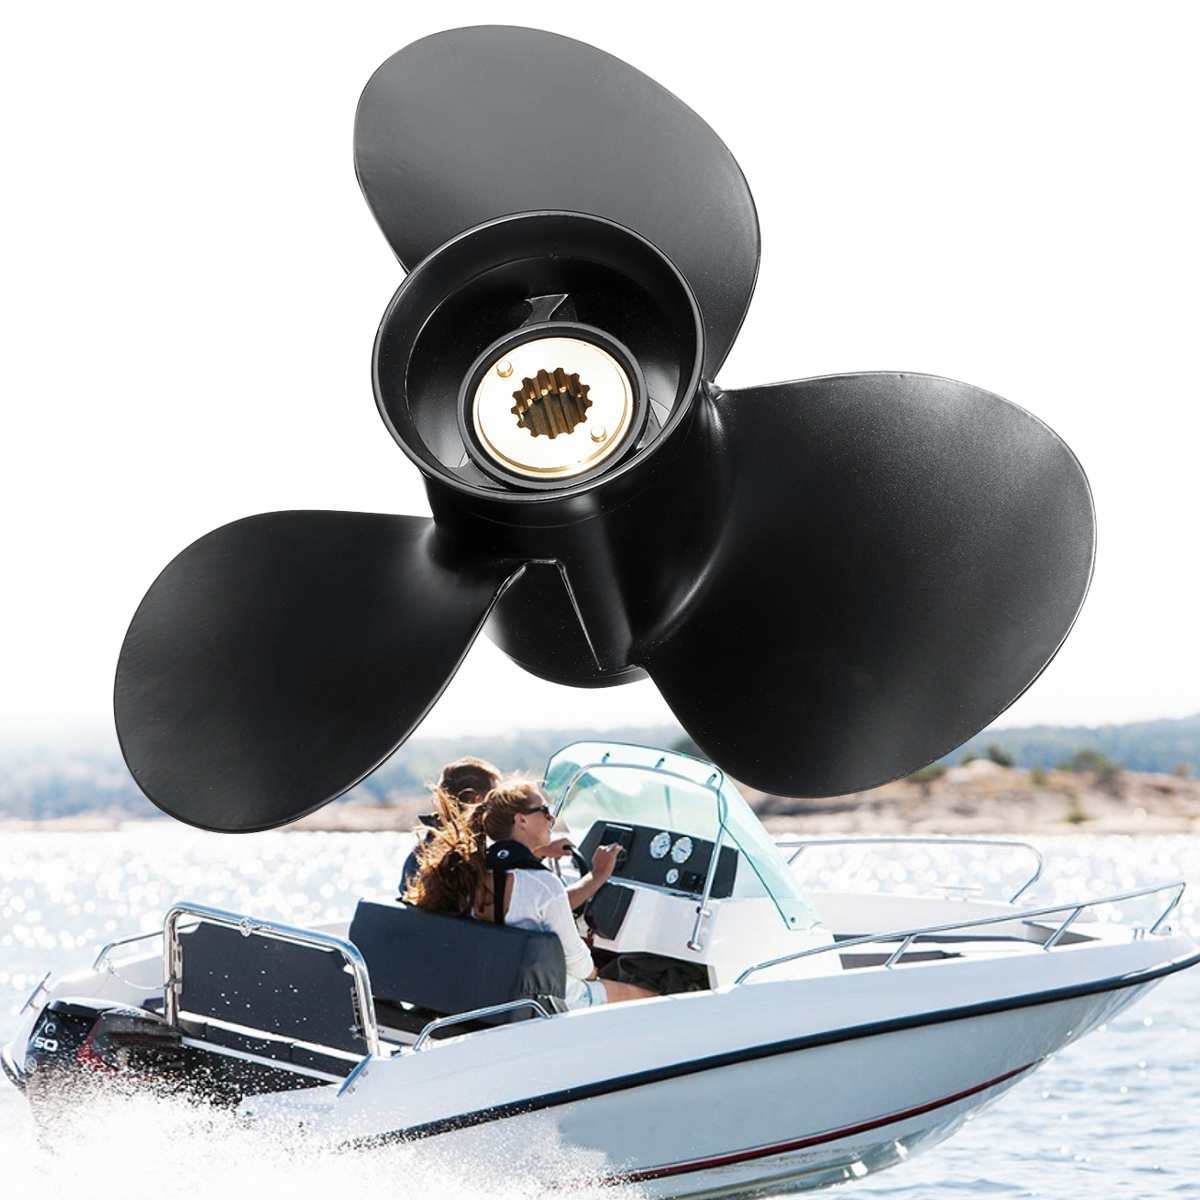 Outboard Propeller 48-73134A40 10 5/8 X 12 For Mercury Engine 25-70HP Aluminum 13 Tooth Spline Boat Accessories 3 Blades